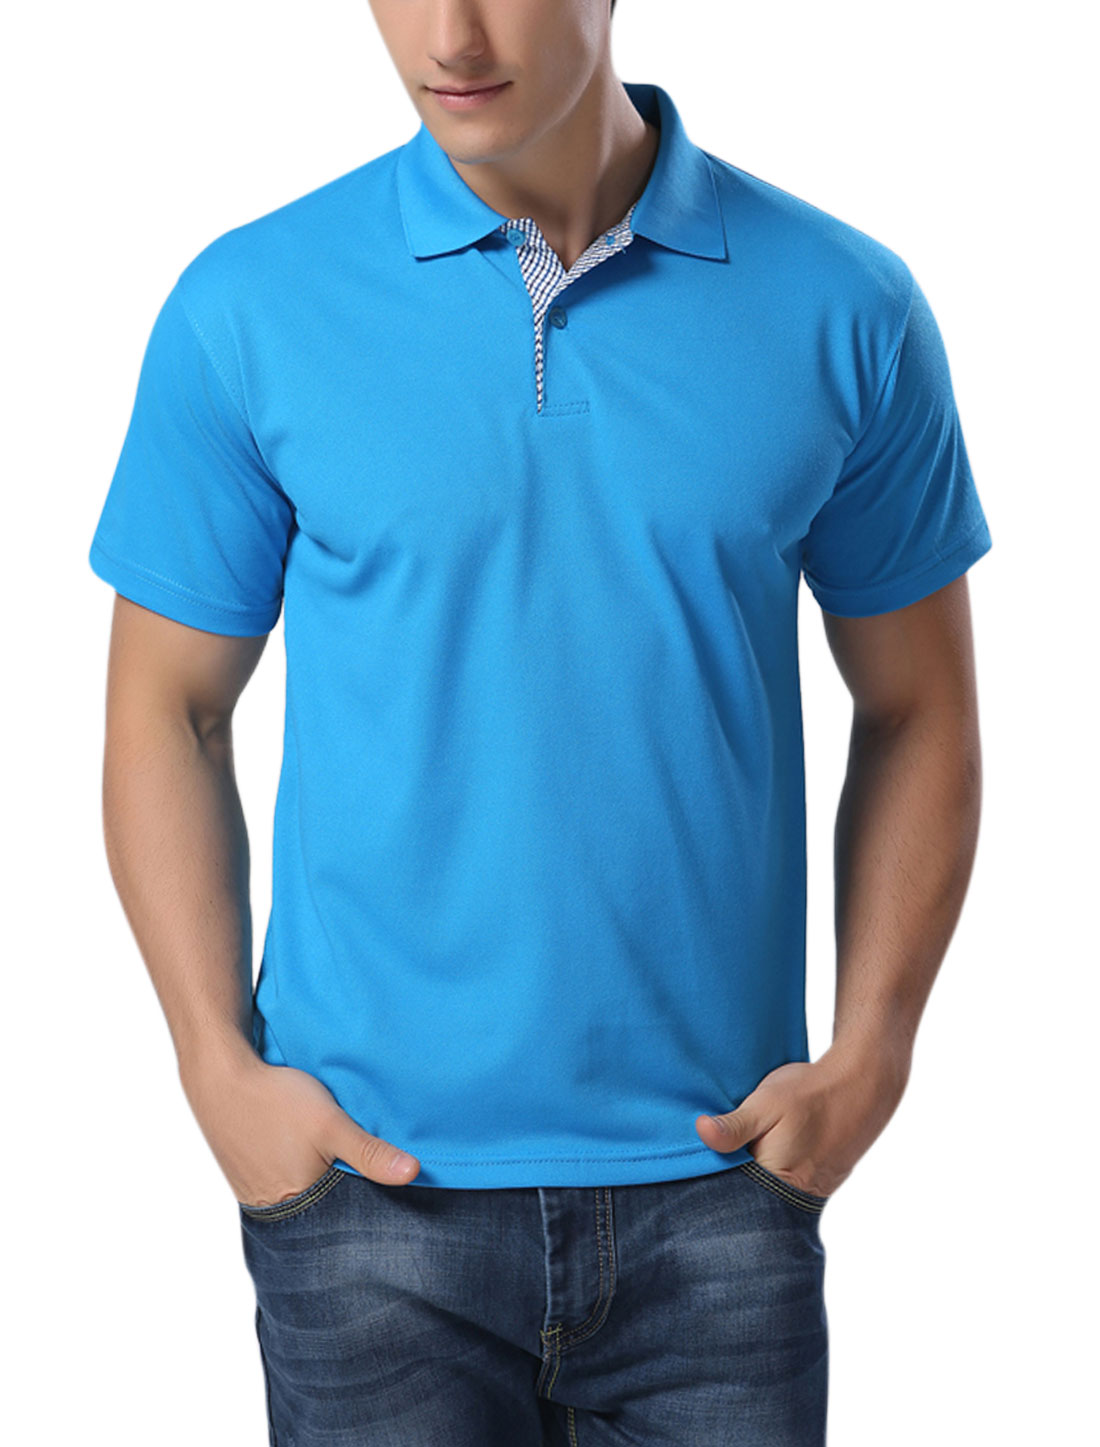 Man Point Collar Short Sleeves Performance Polo Shirts Turquoise M